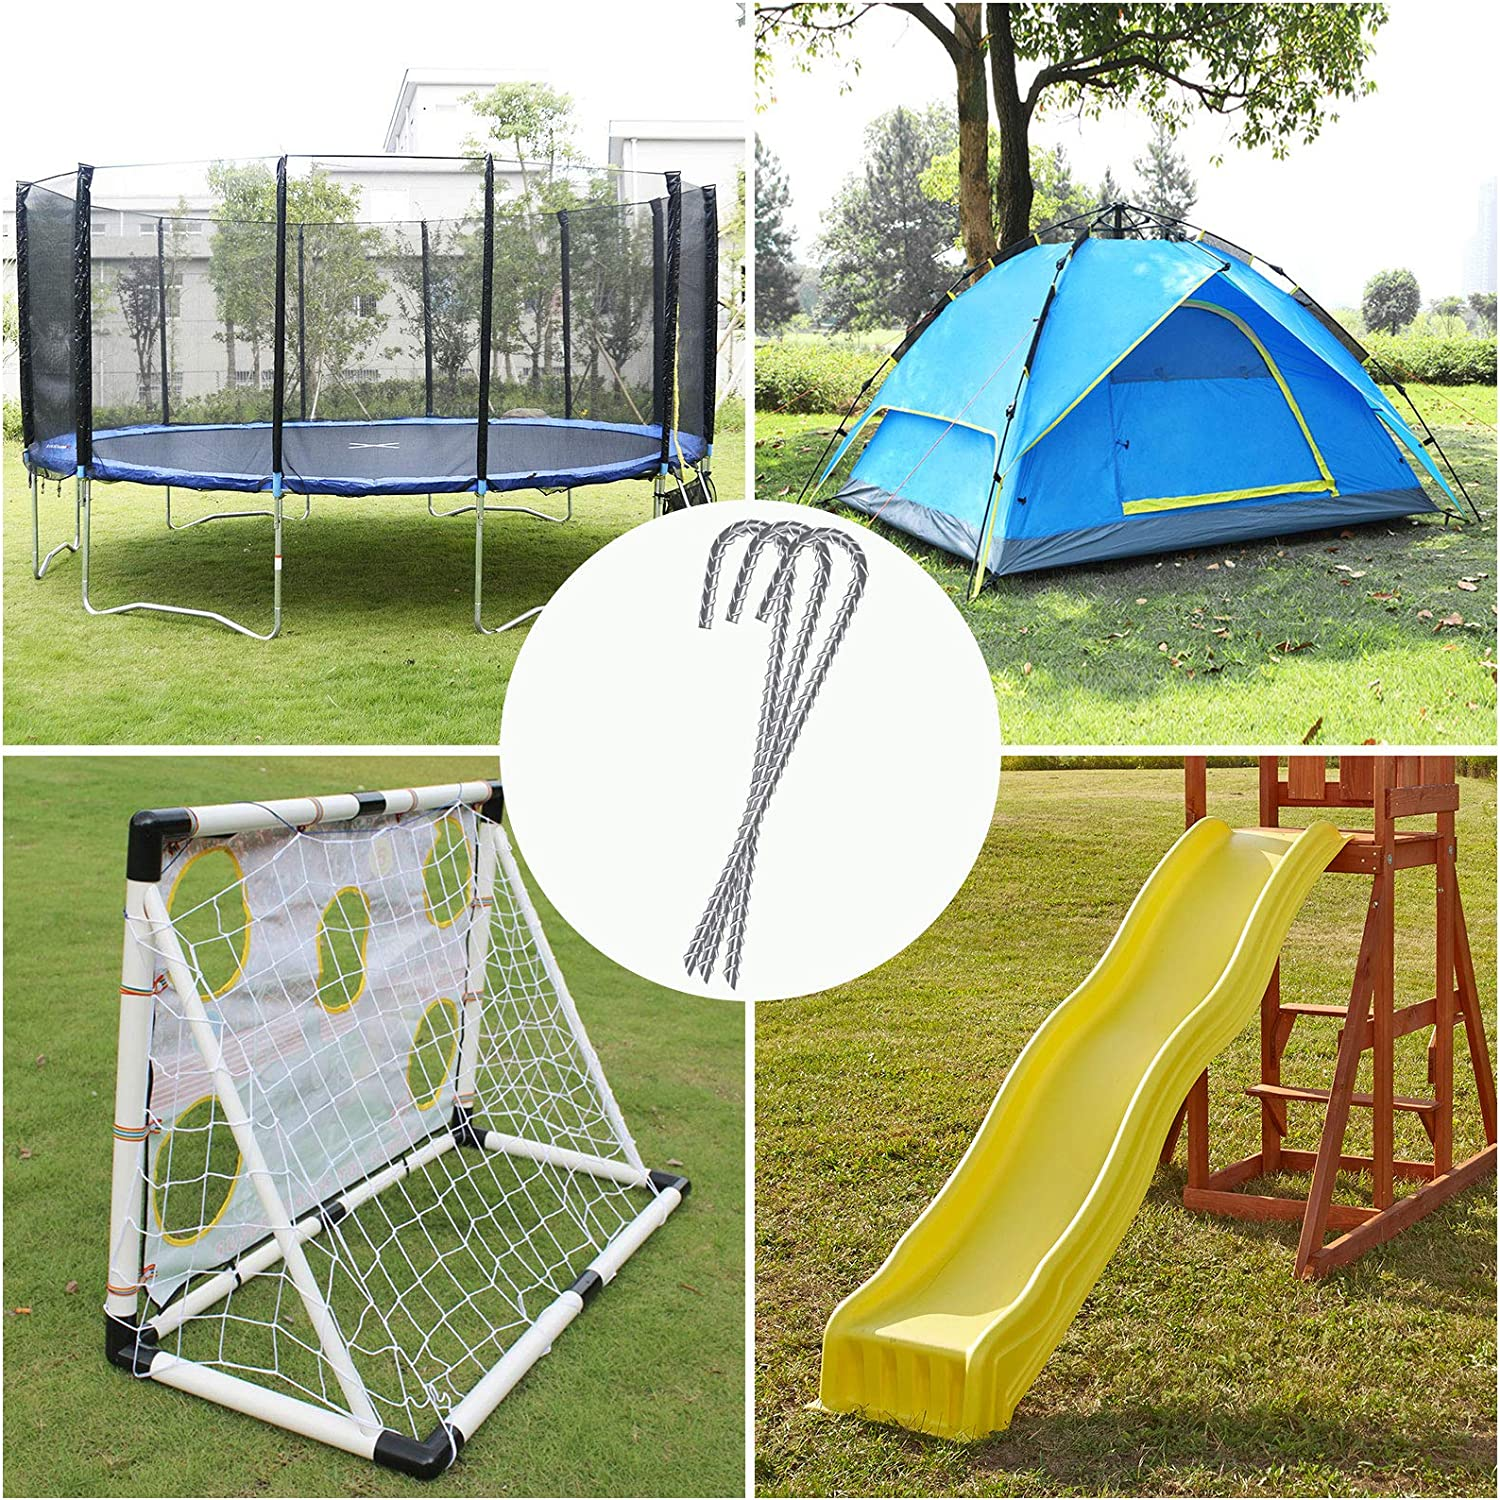 Great for Tents Trampoline and Fences AGPtEK 6 Packs Heavy Duty J Hook Rebar Stakes Galvanized Steel Garden Stakes Steel Ground Anchors Ground Stakes